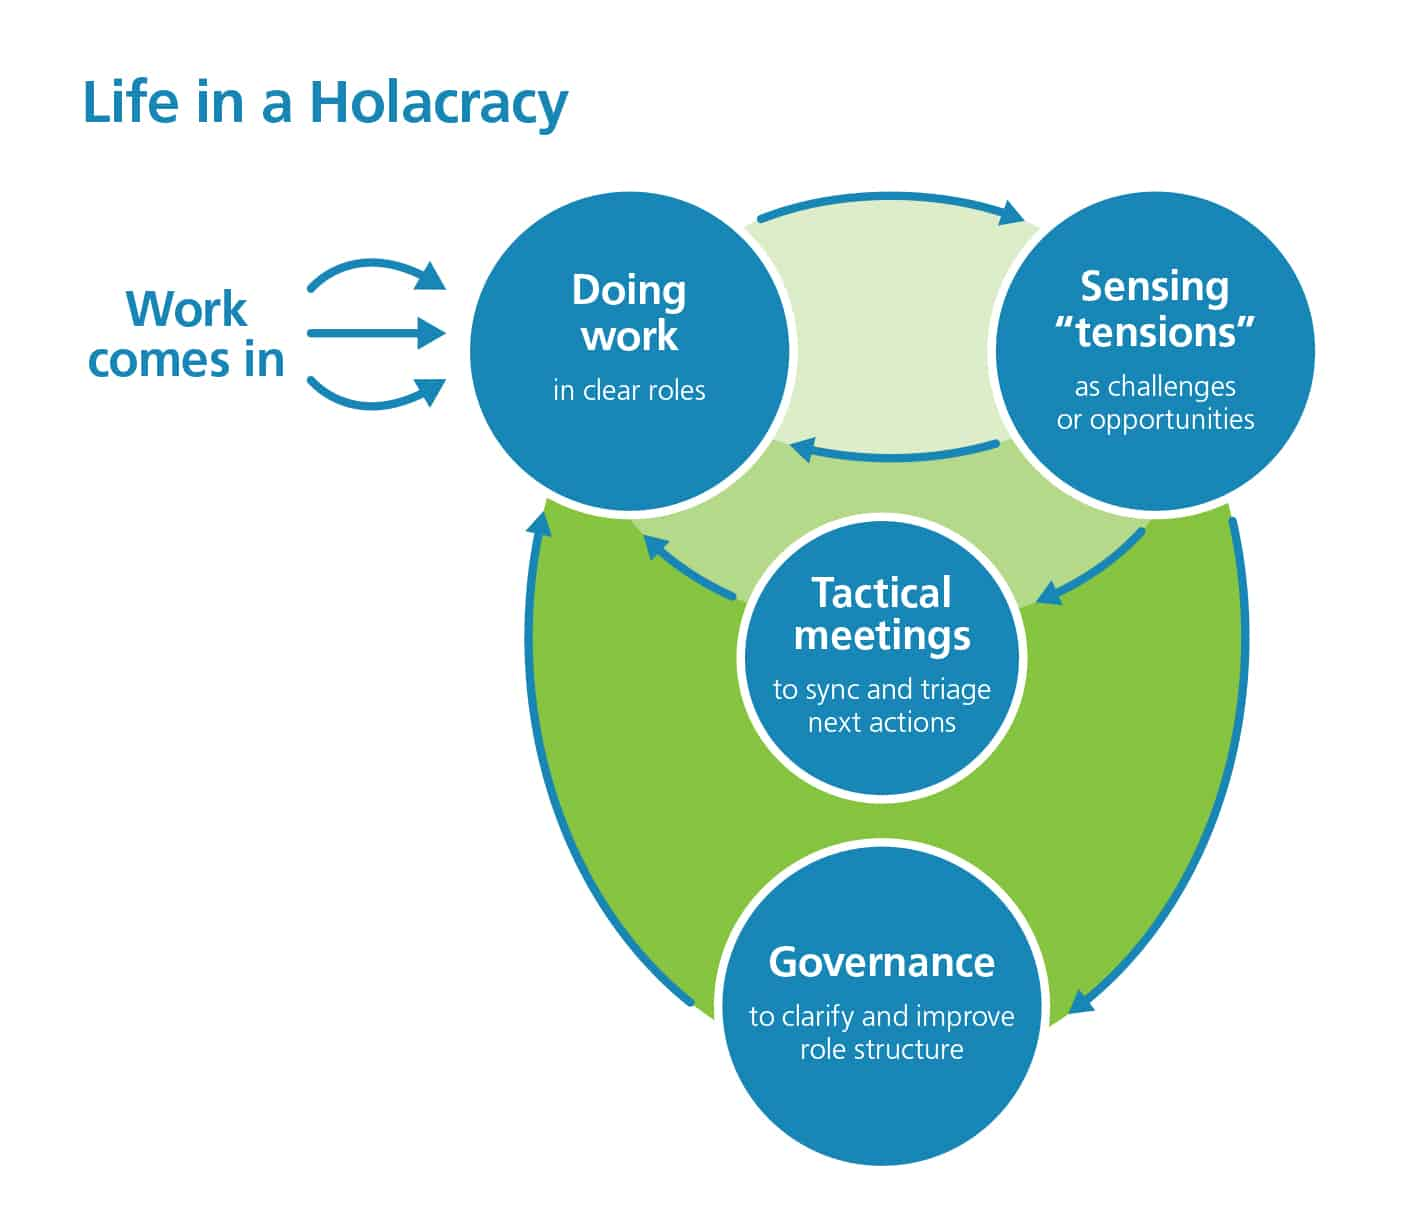 Life in a Holacracy